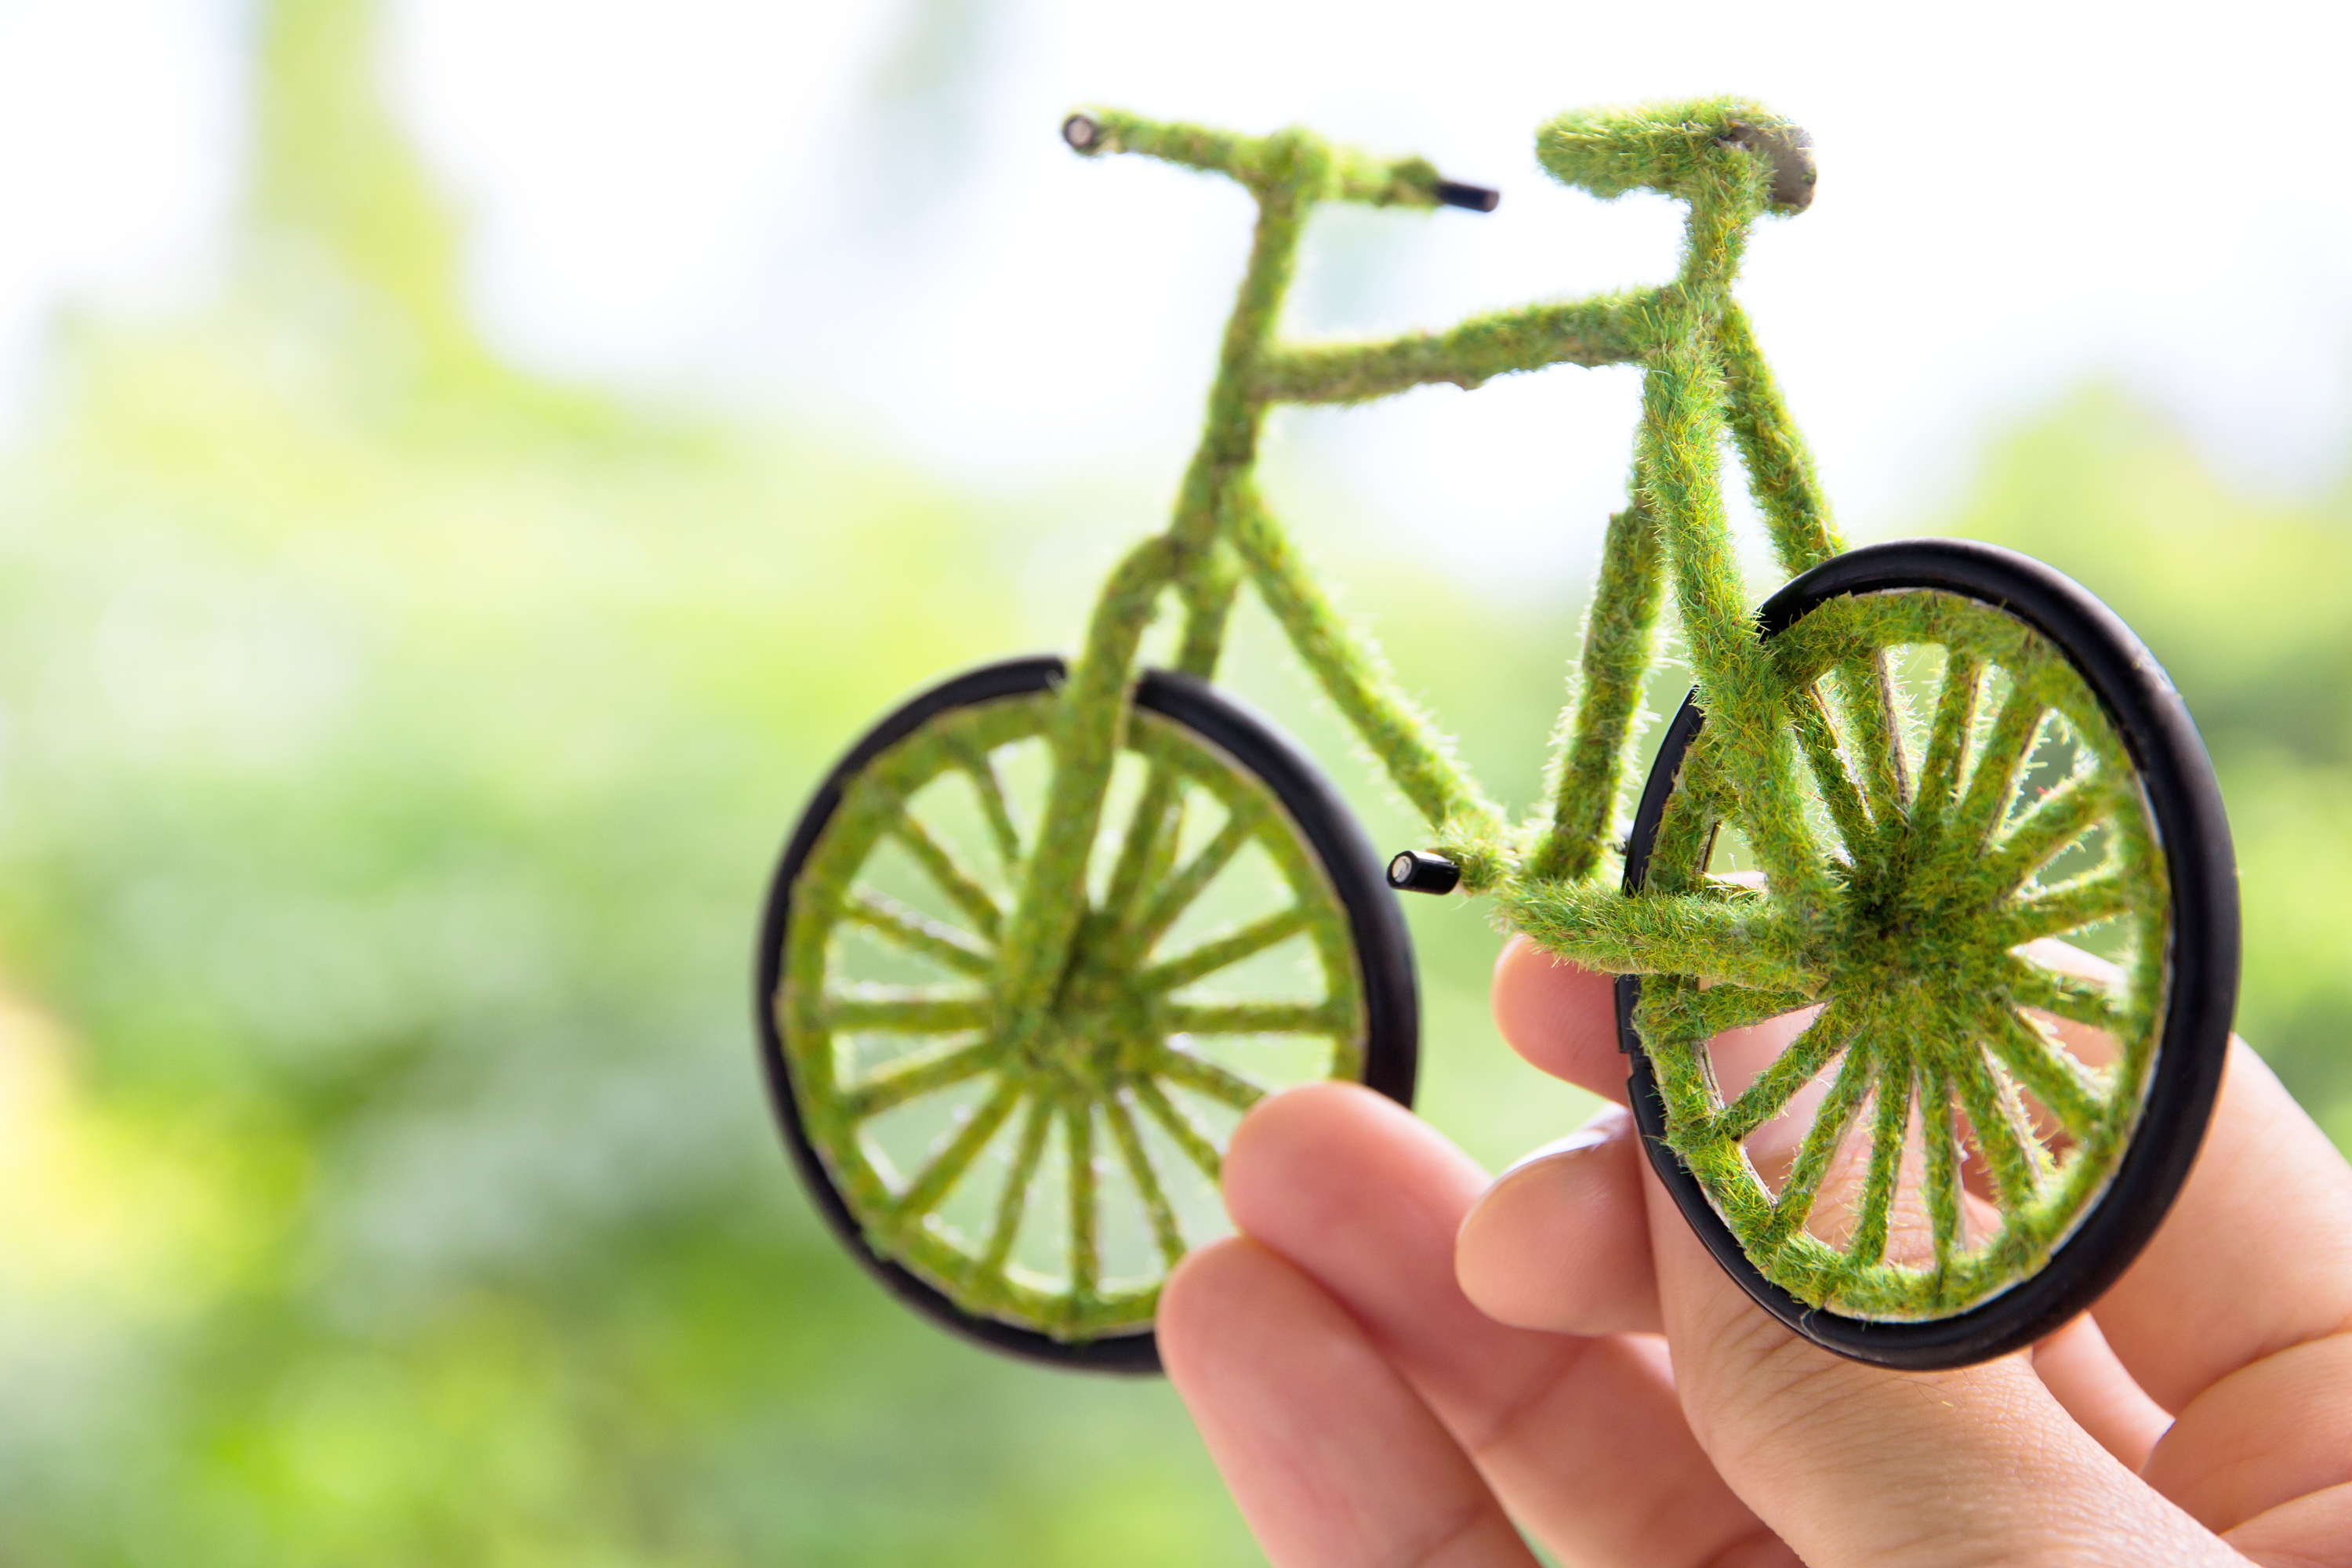 """an """"eco bike"""" covered in moss and greenery, being held up by someone's hand"""